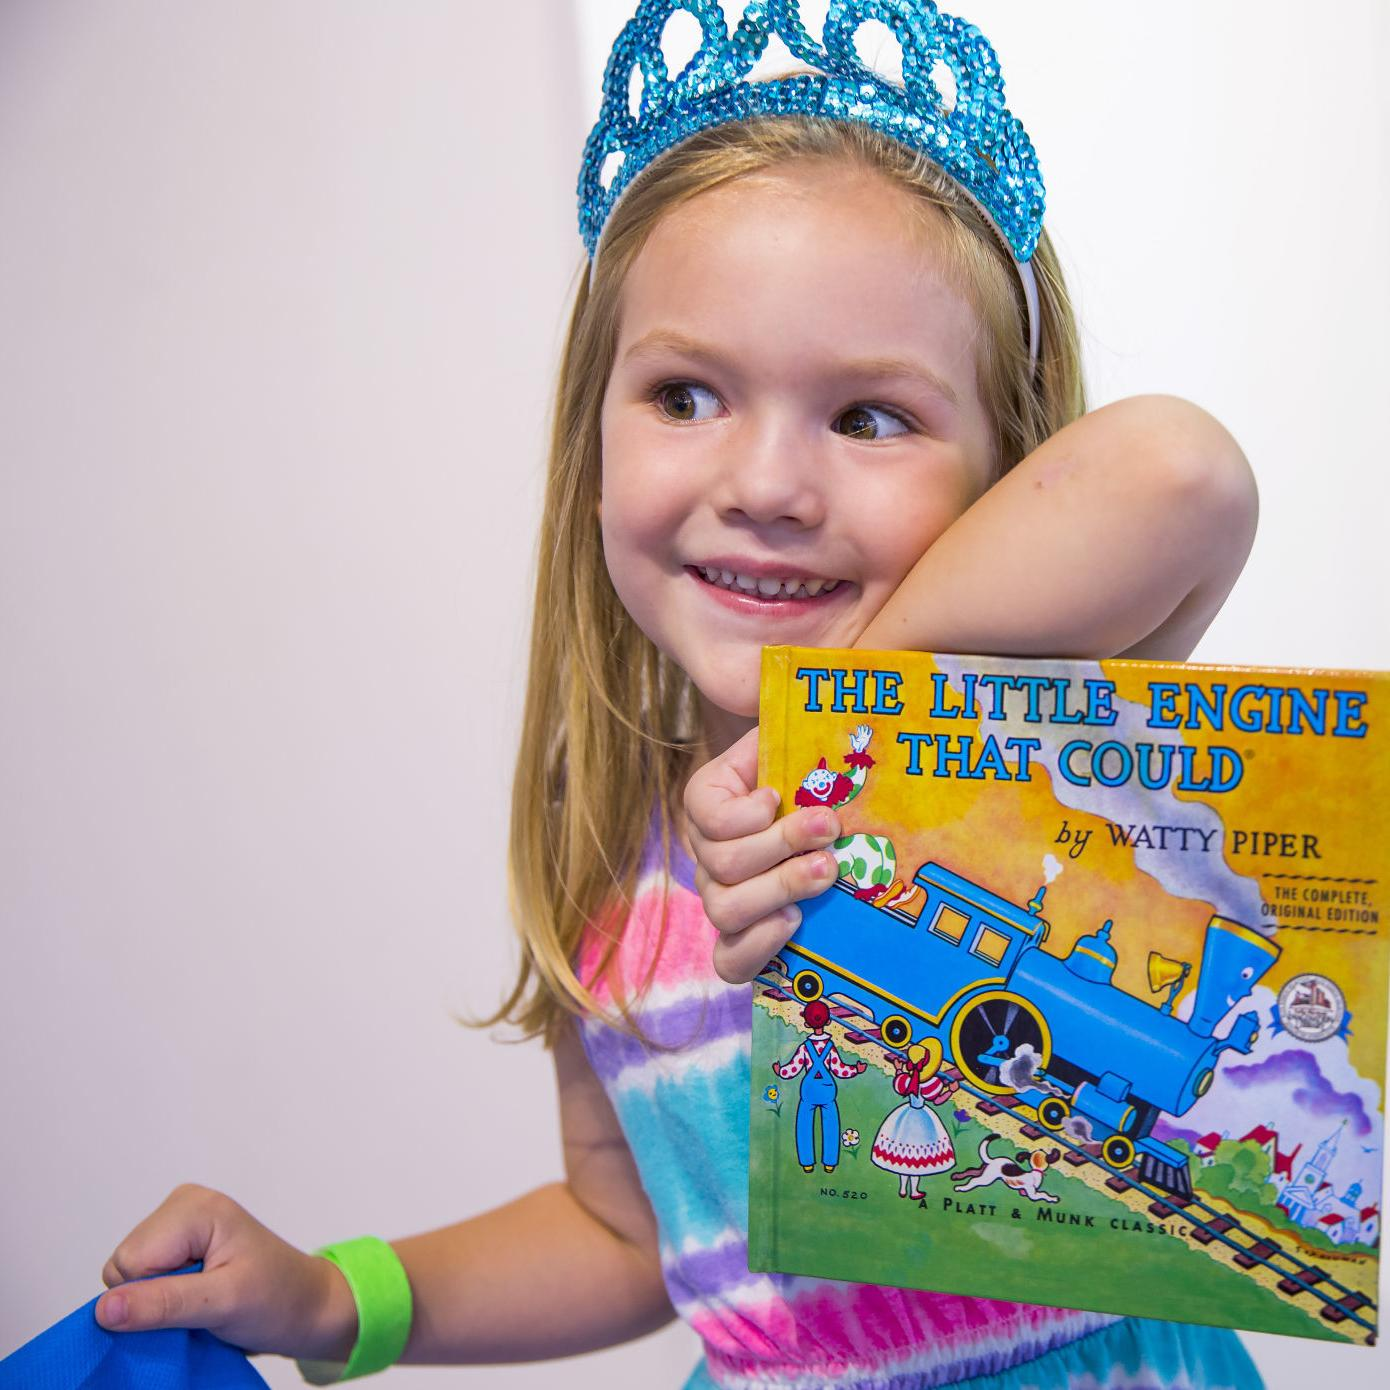 Guilford families sign up kids for free books at Imagination Library